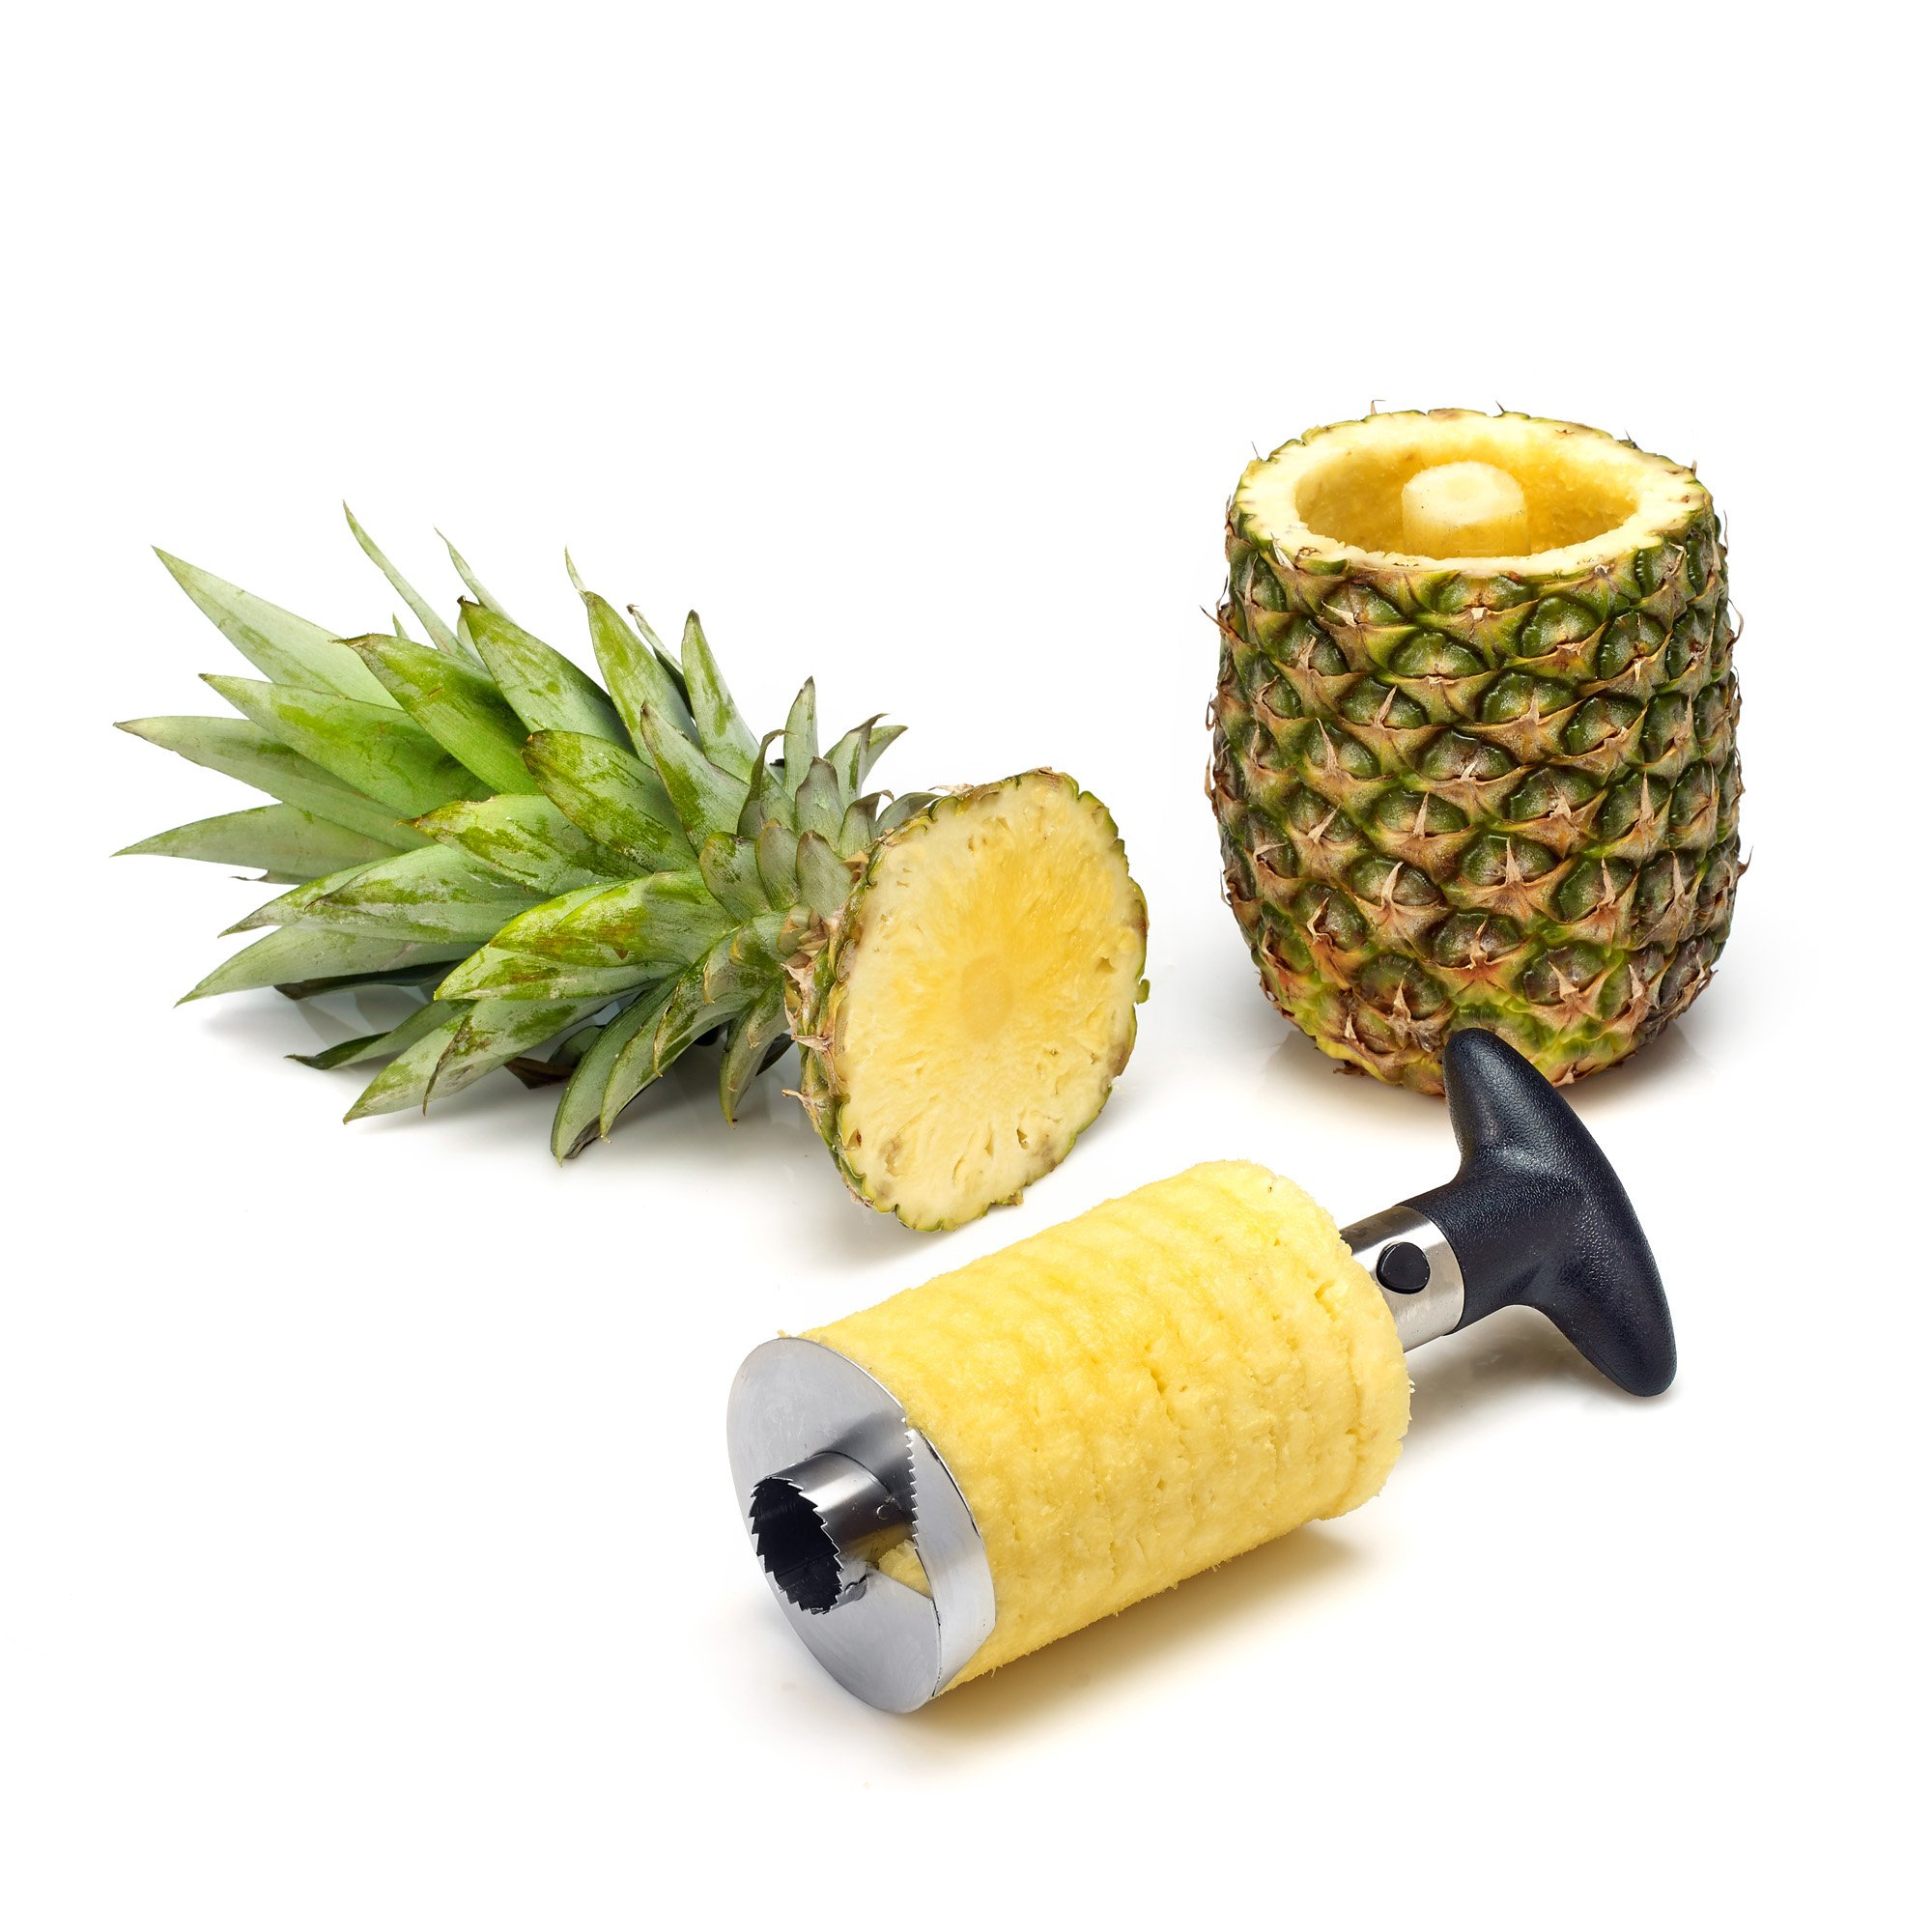 Pineapple Peeler Corer Slicer And Apple Core Remover Stainless Steel  Kitchen Set